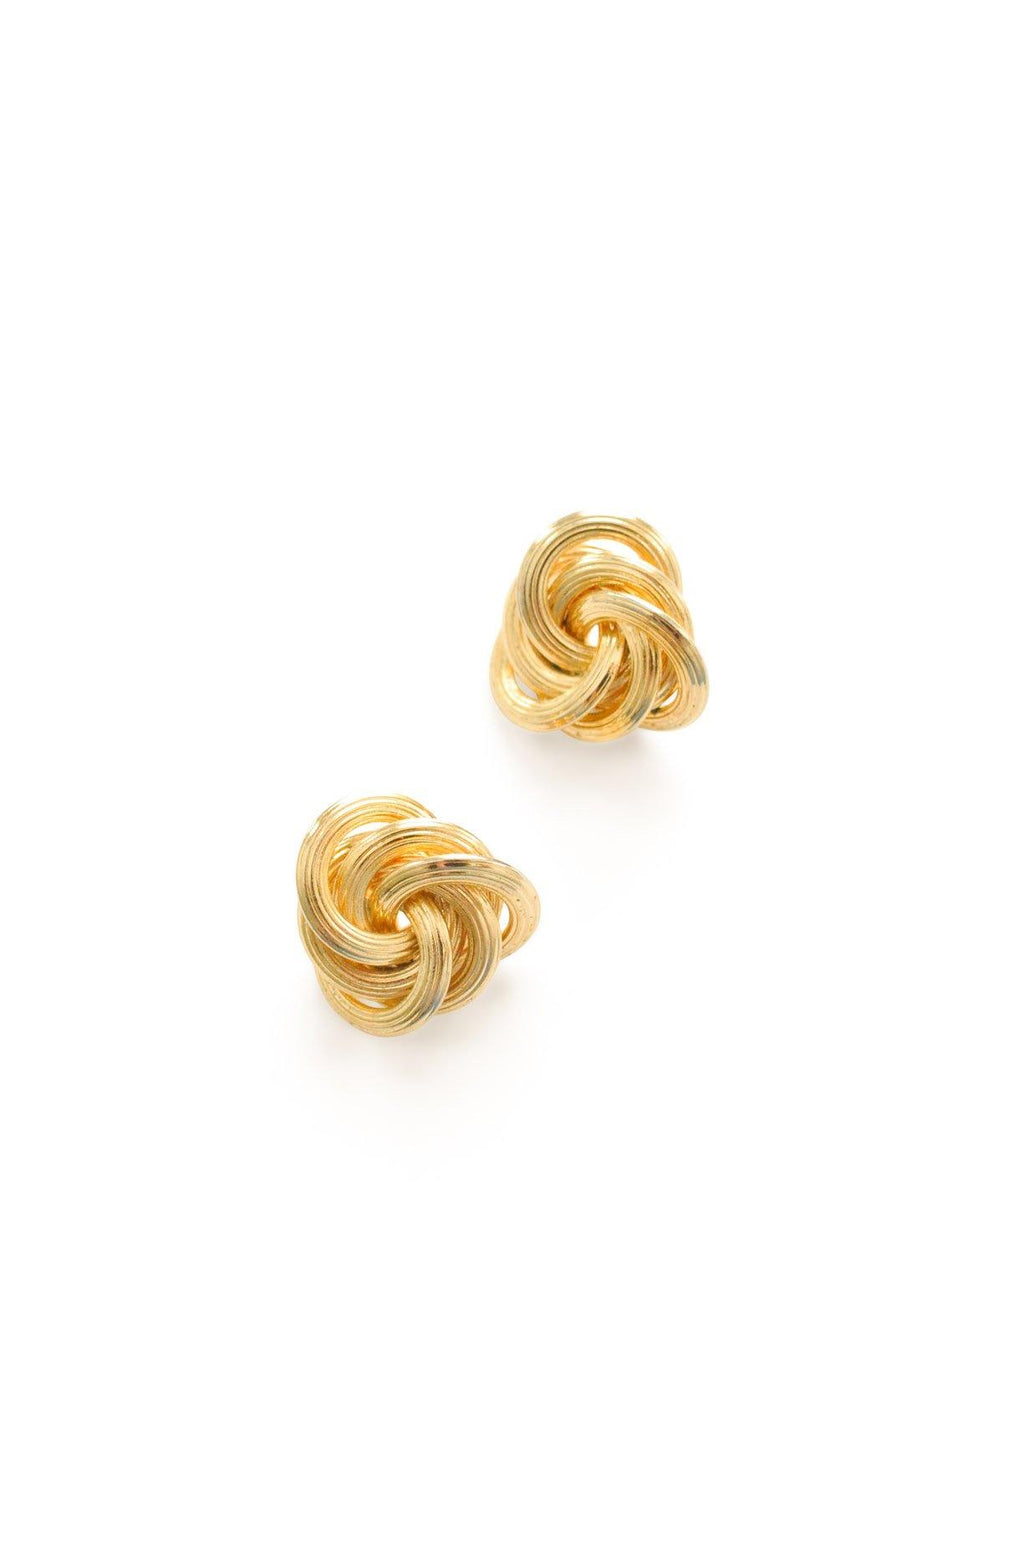 Statement Love Knot Pierced Earrings